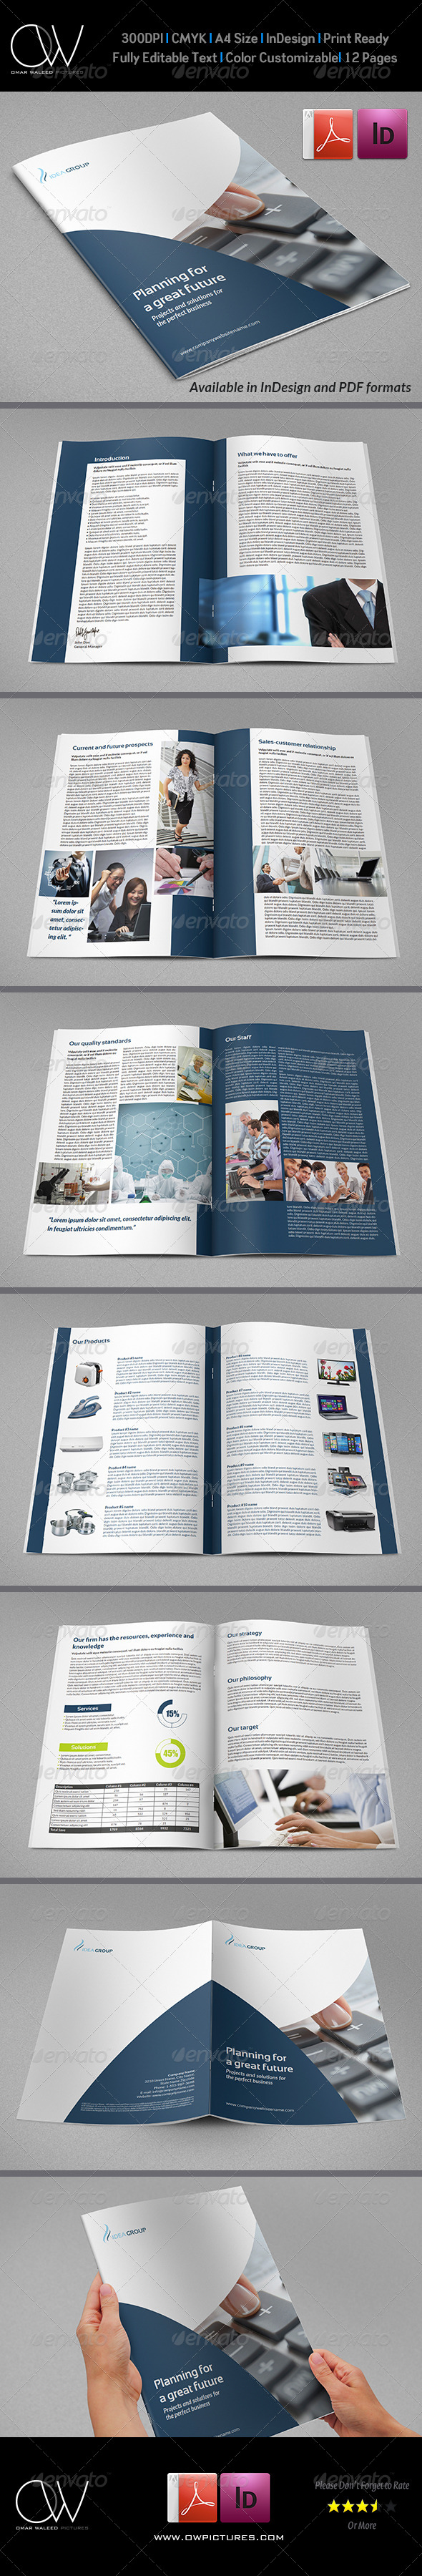 GraphicRiver Corporate Brochure Template Vol.19 12 Pages 6577693